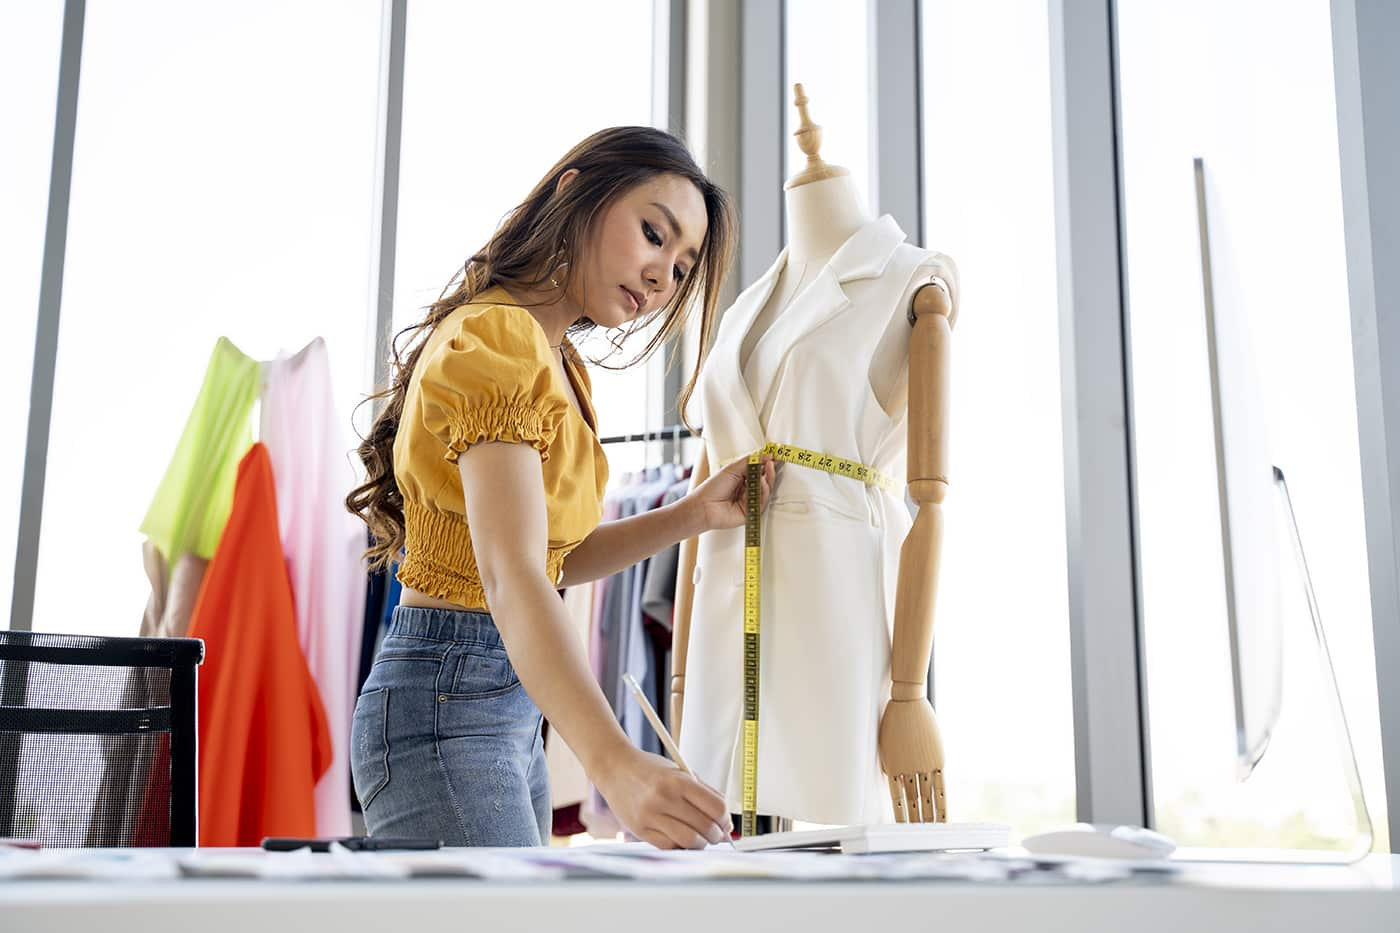 Fashion Design Schools and Colleges